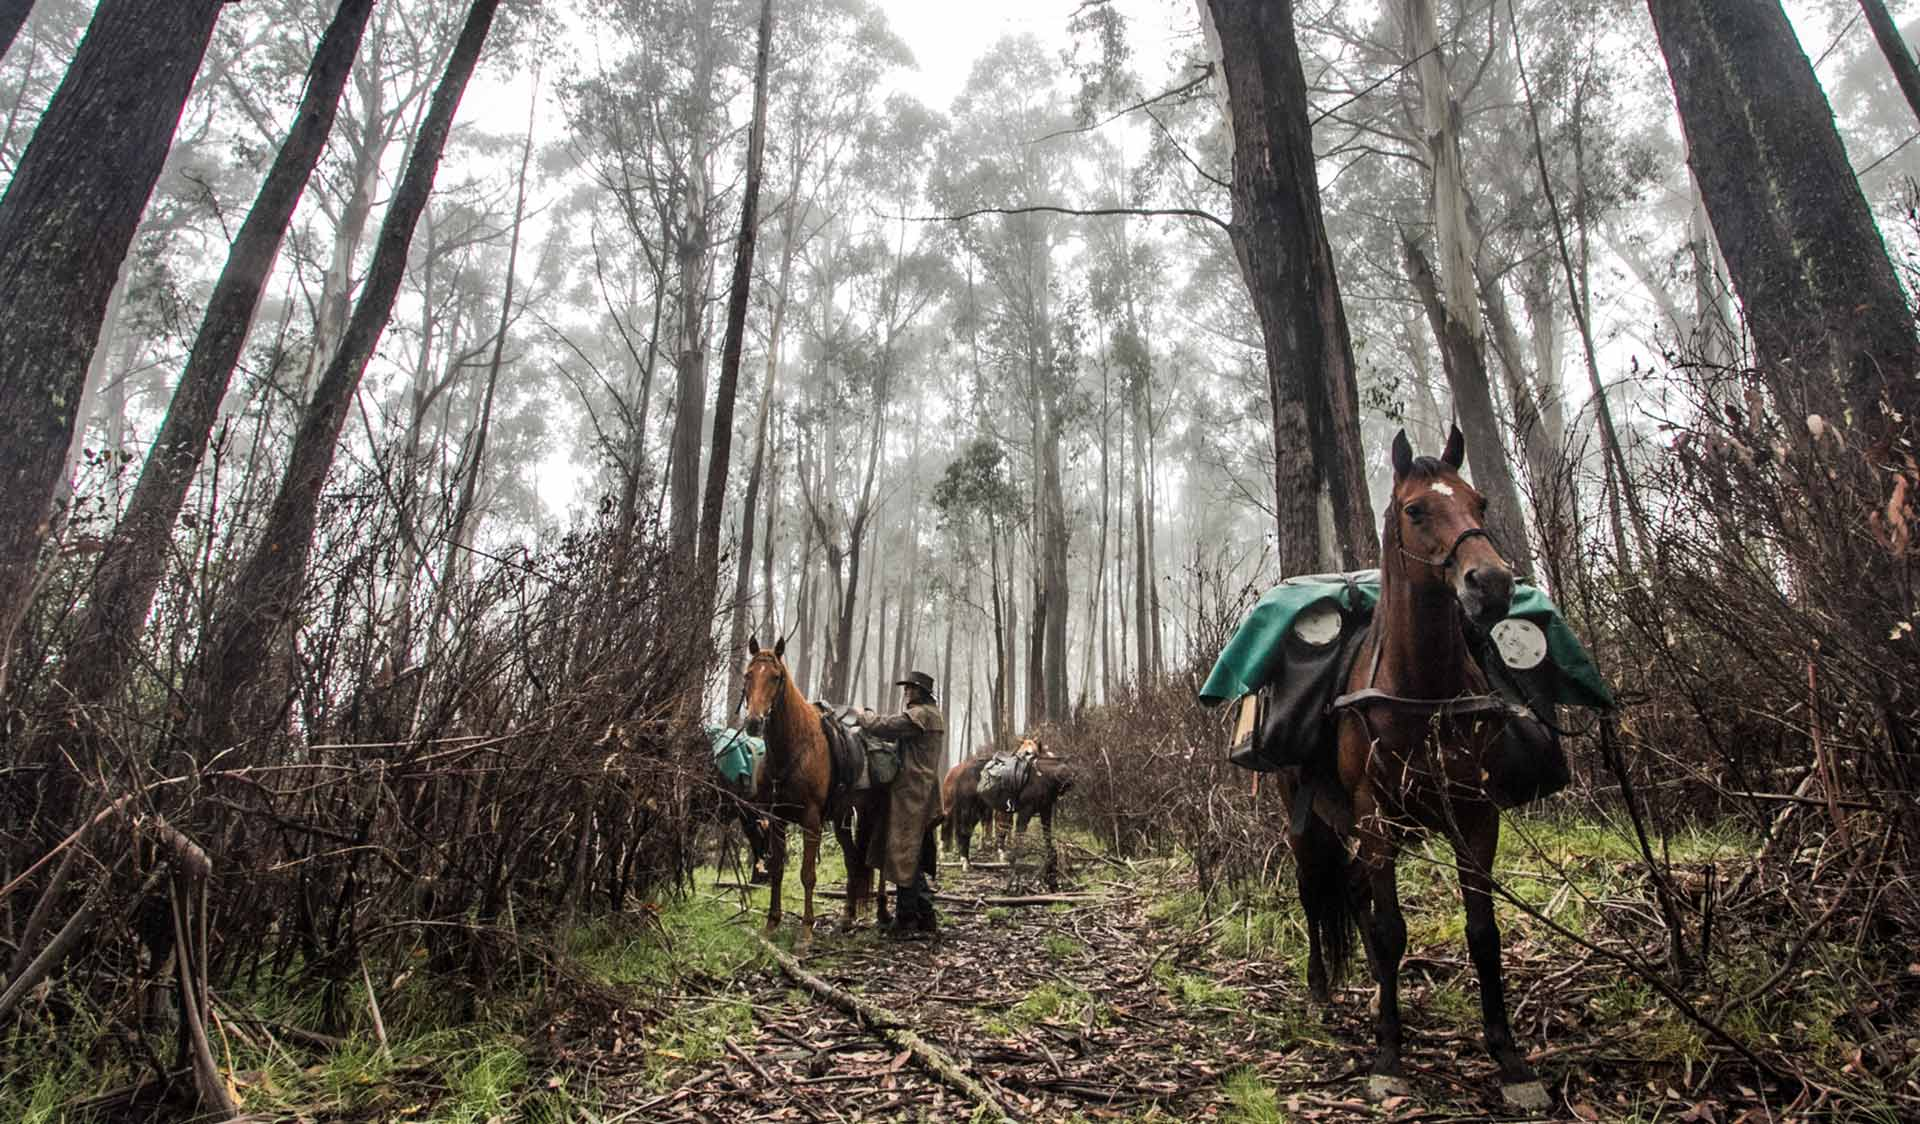 A man wearing a driza-bone jacket adjusts the saddle of his horse in a forest in the Alpine National Park.